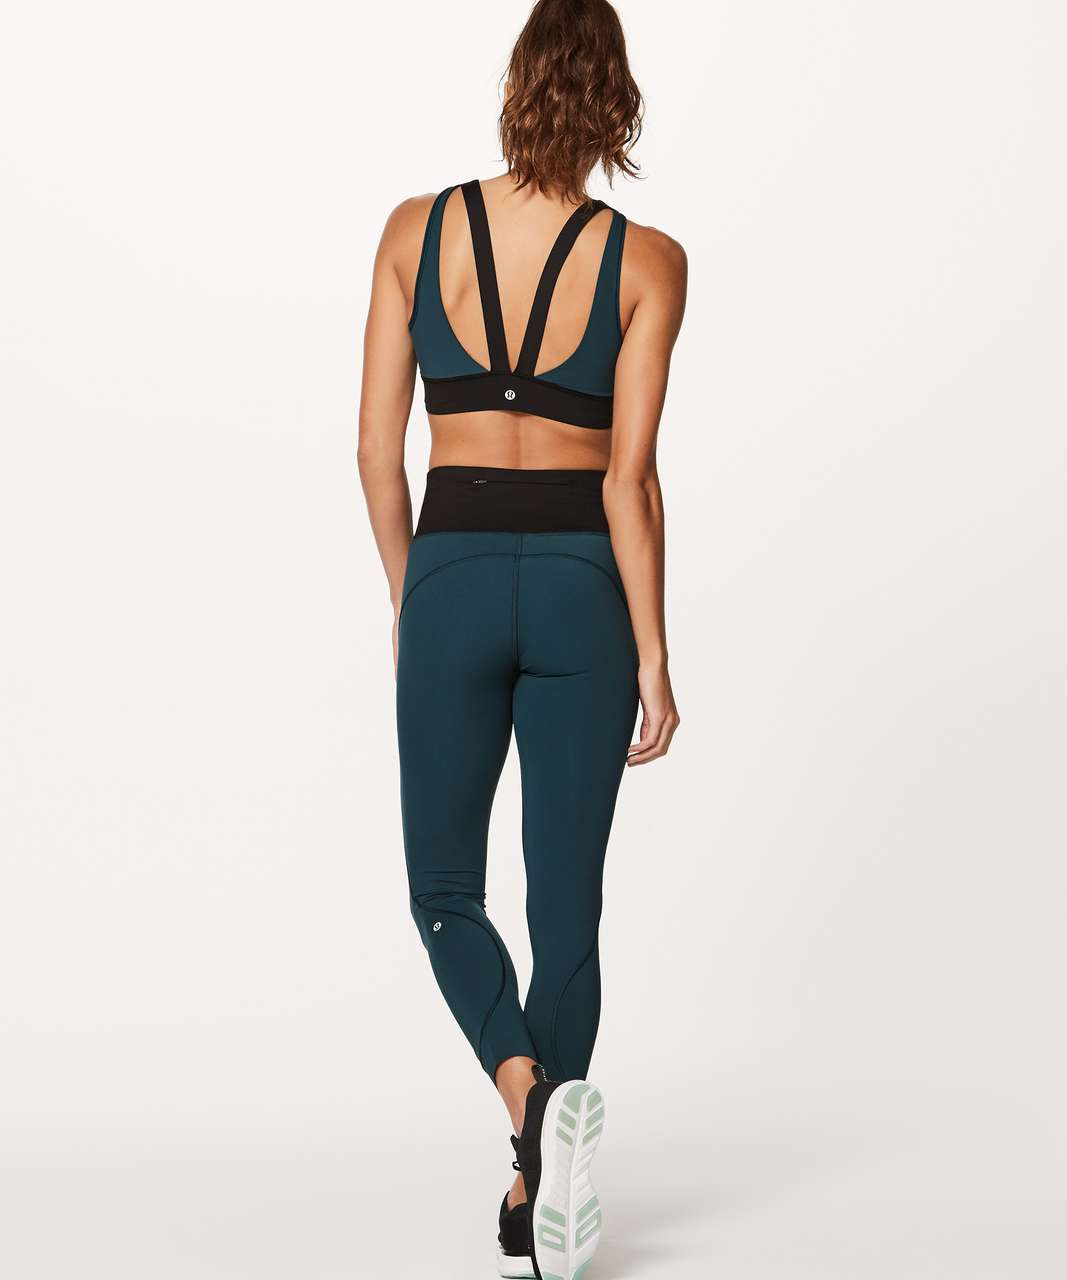 Lululemon Run The Day Bra - Submarine / Black